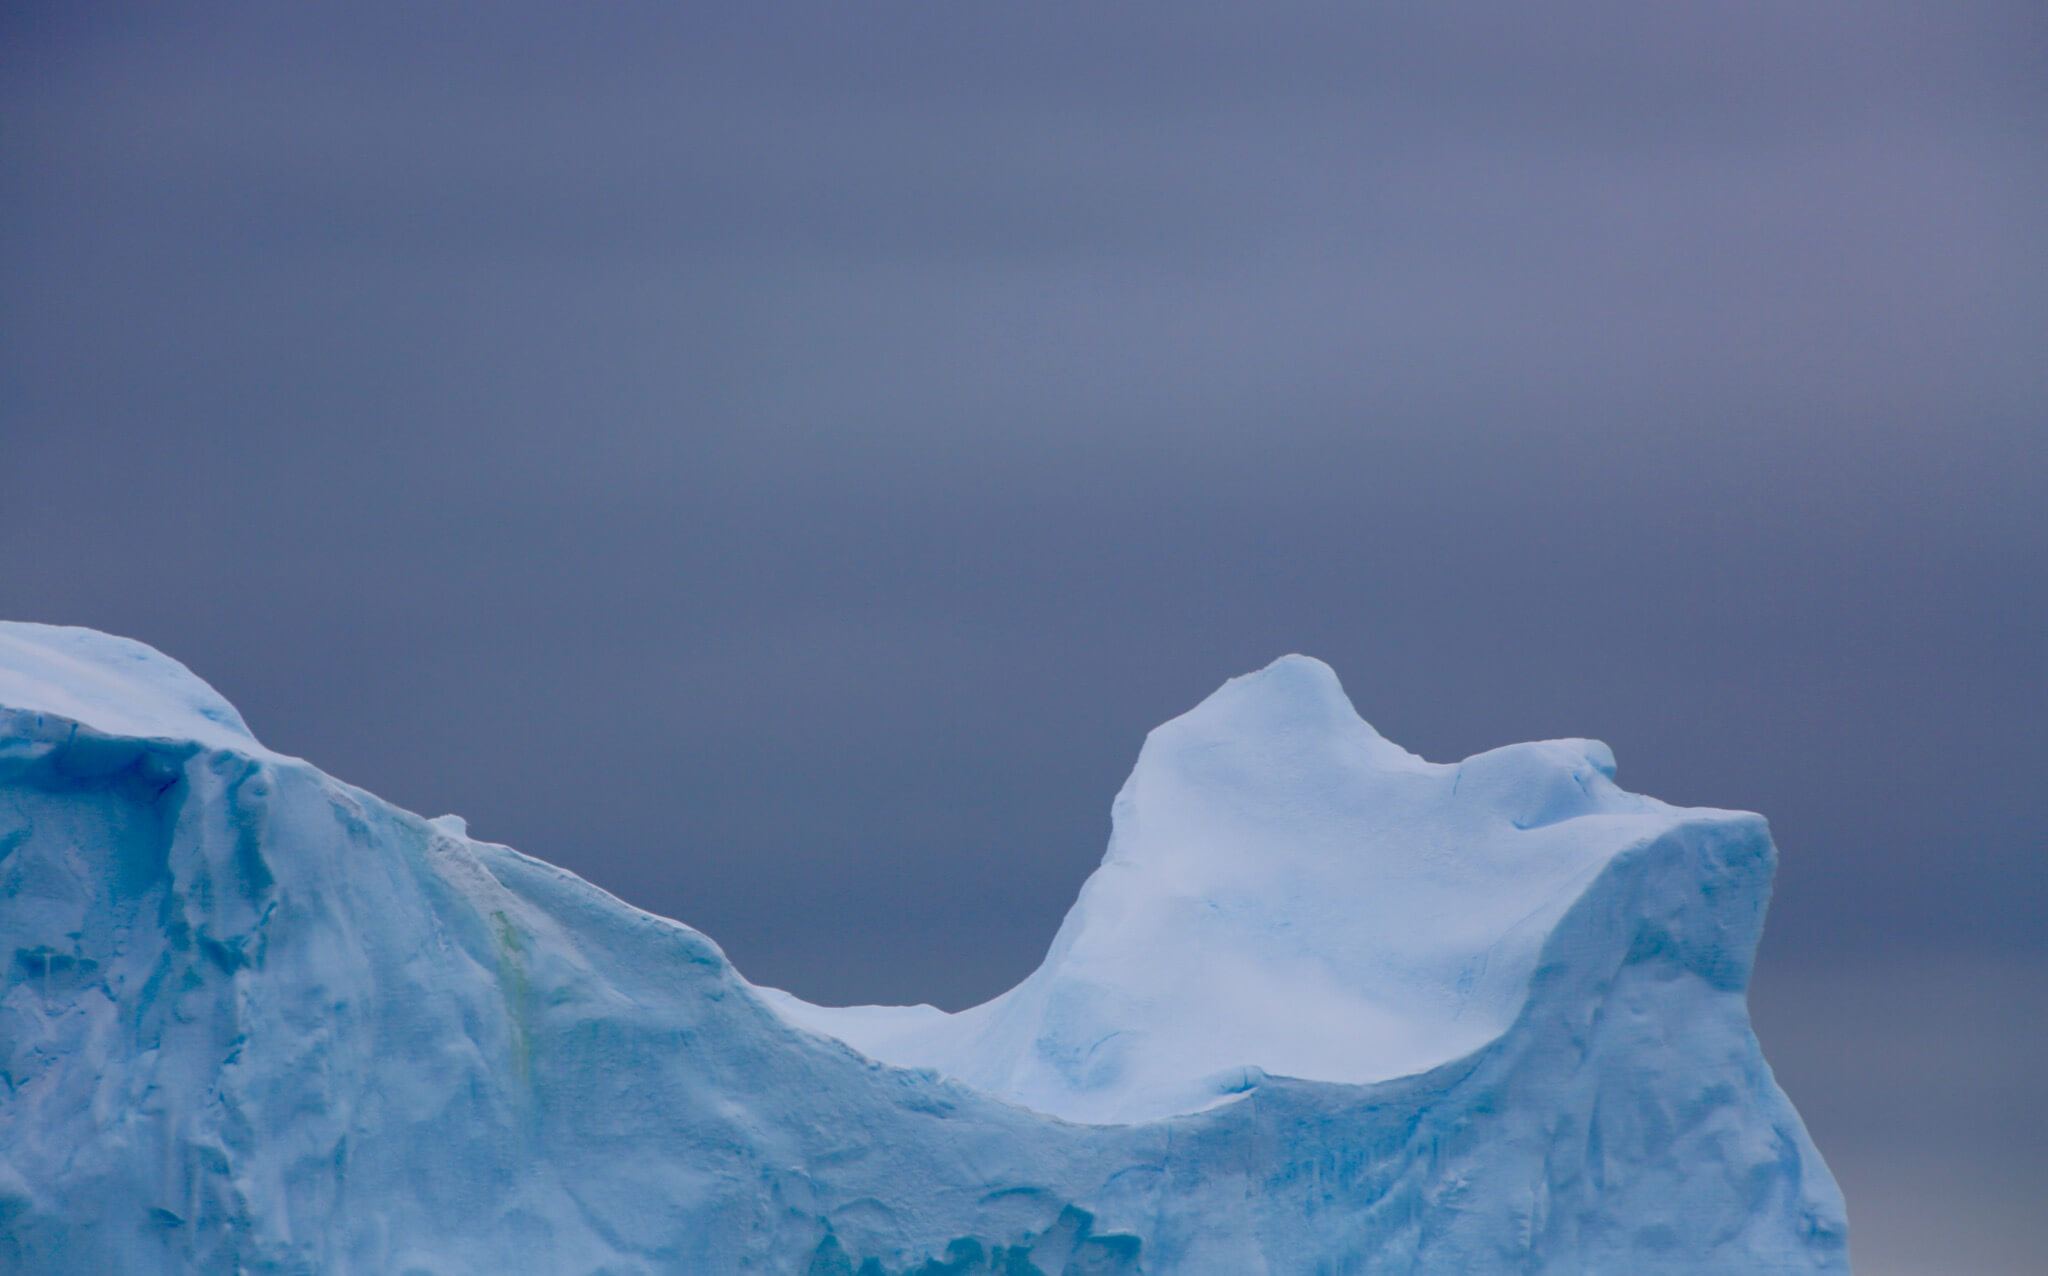 The waters surrounding Adelaide Island are full of large icebergs and smaller ice floes.